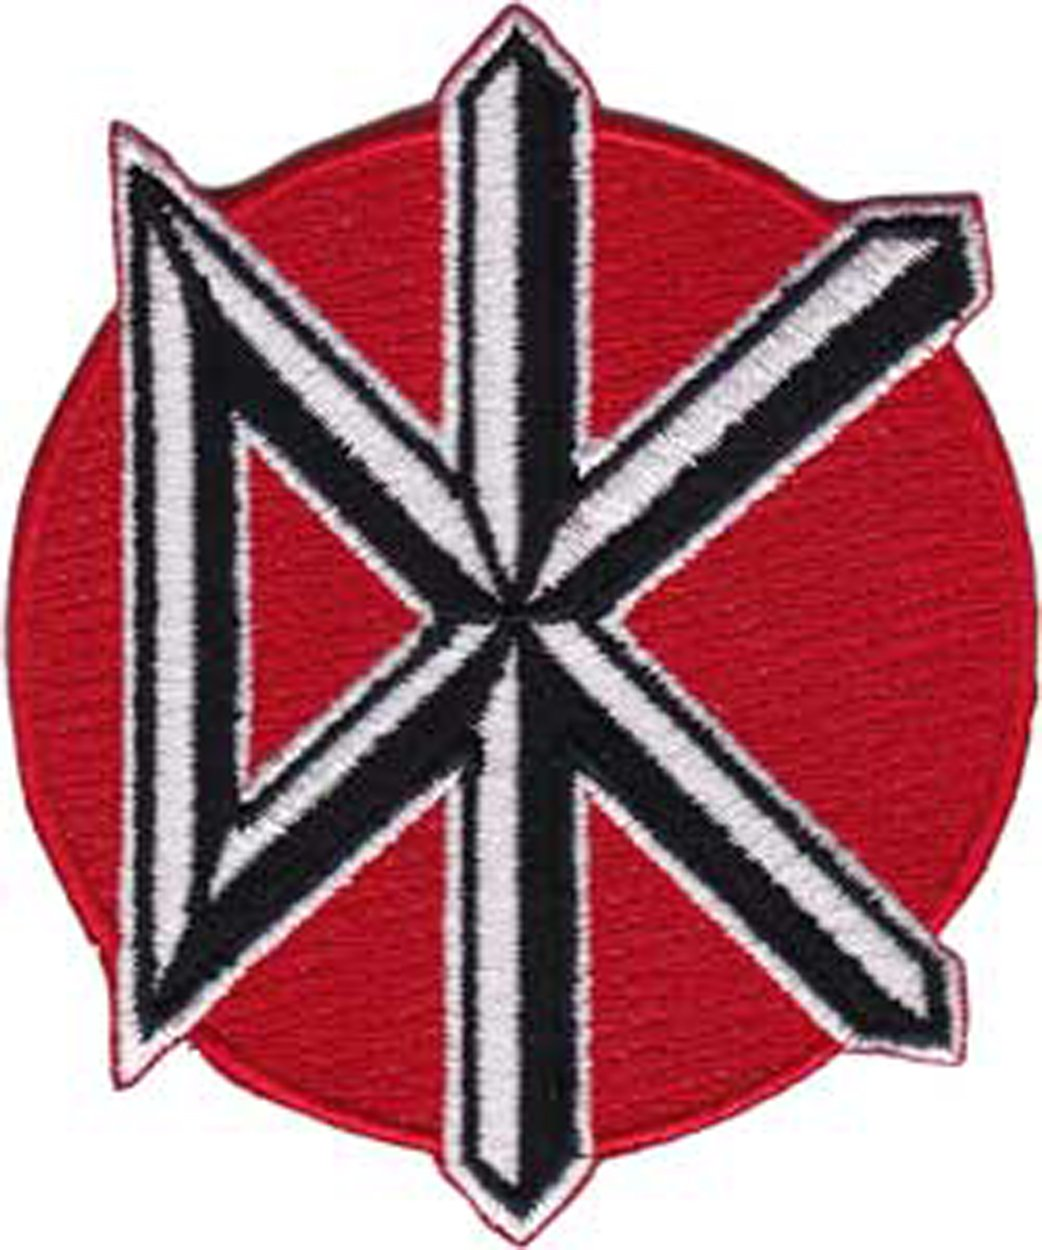 DEAD KENNEDYS Icon, Officially Licensed Original Artwork, Premium Quality Iron-On / Sew-On, 2.5 x 3 Embroidered PATCH toppa P-4098